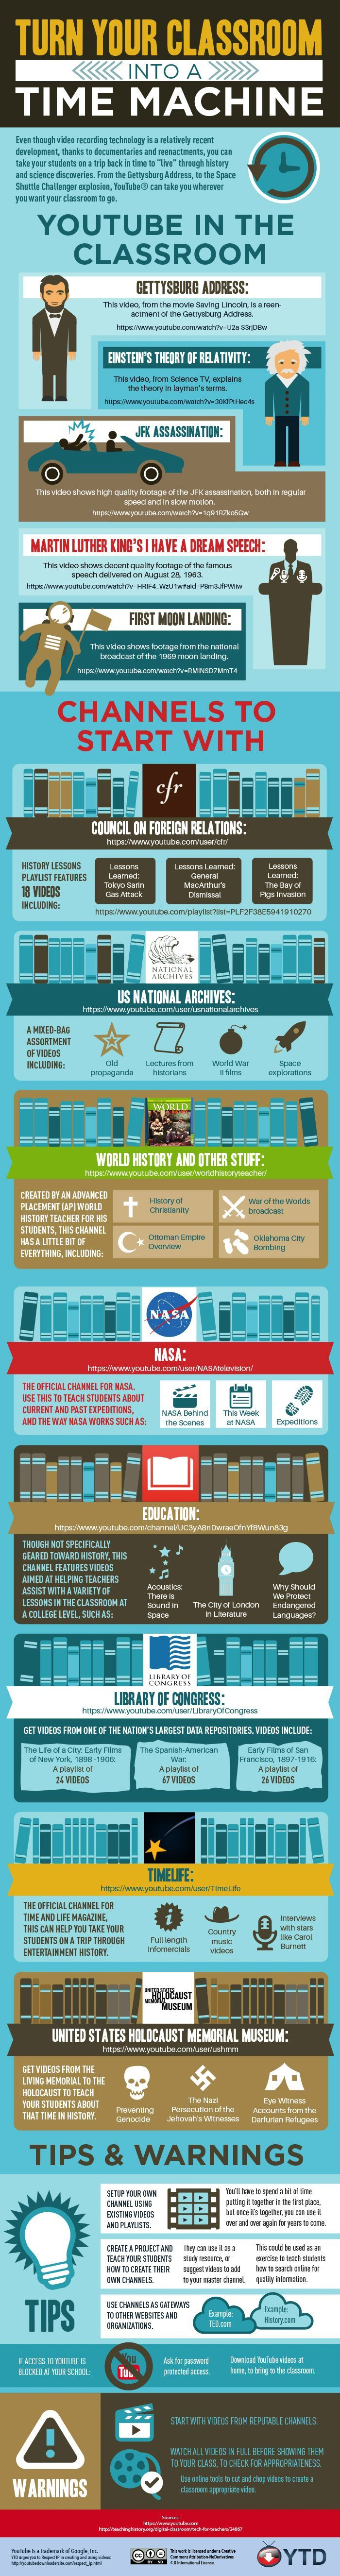 Have a look at this infographic for more insights on how to turn your classroom into a Time Machine.